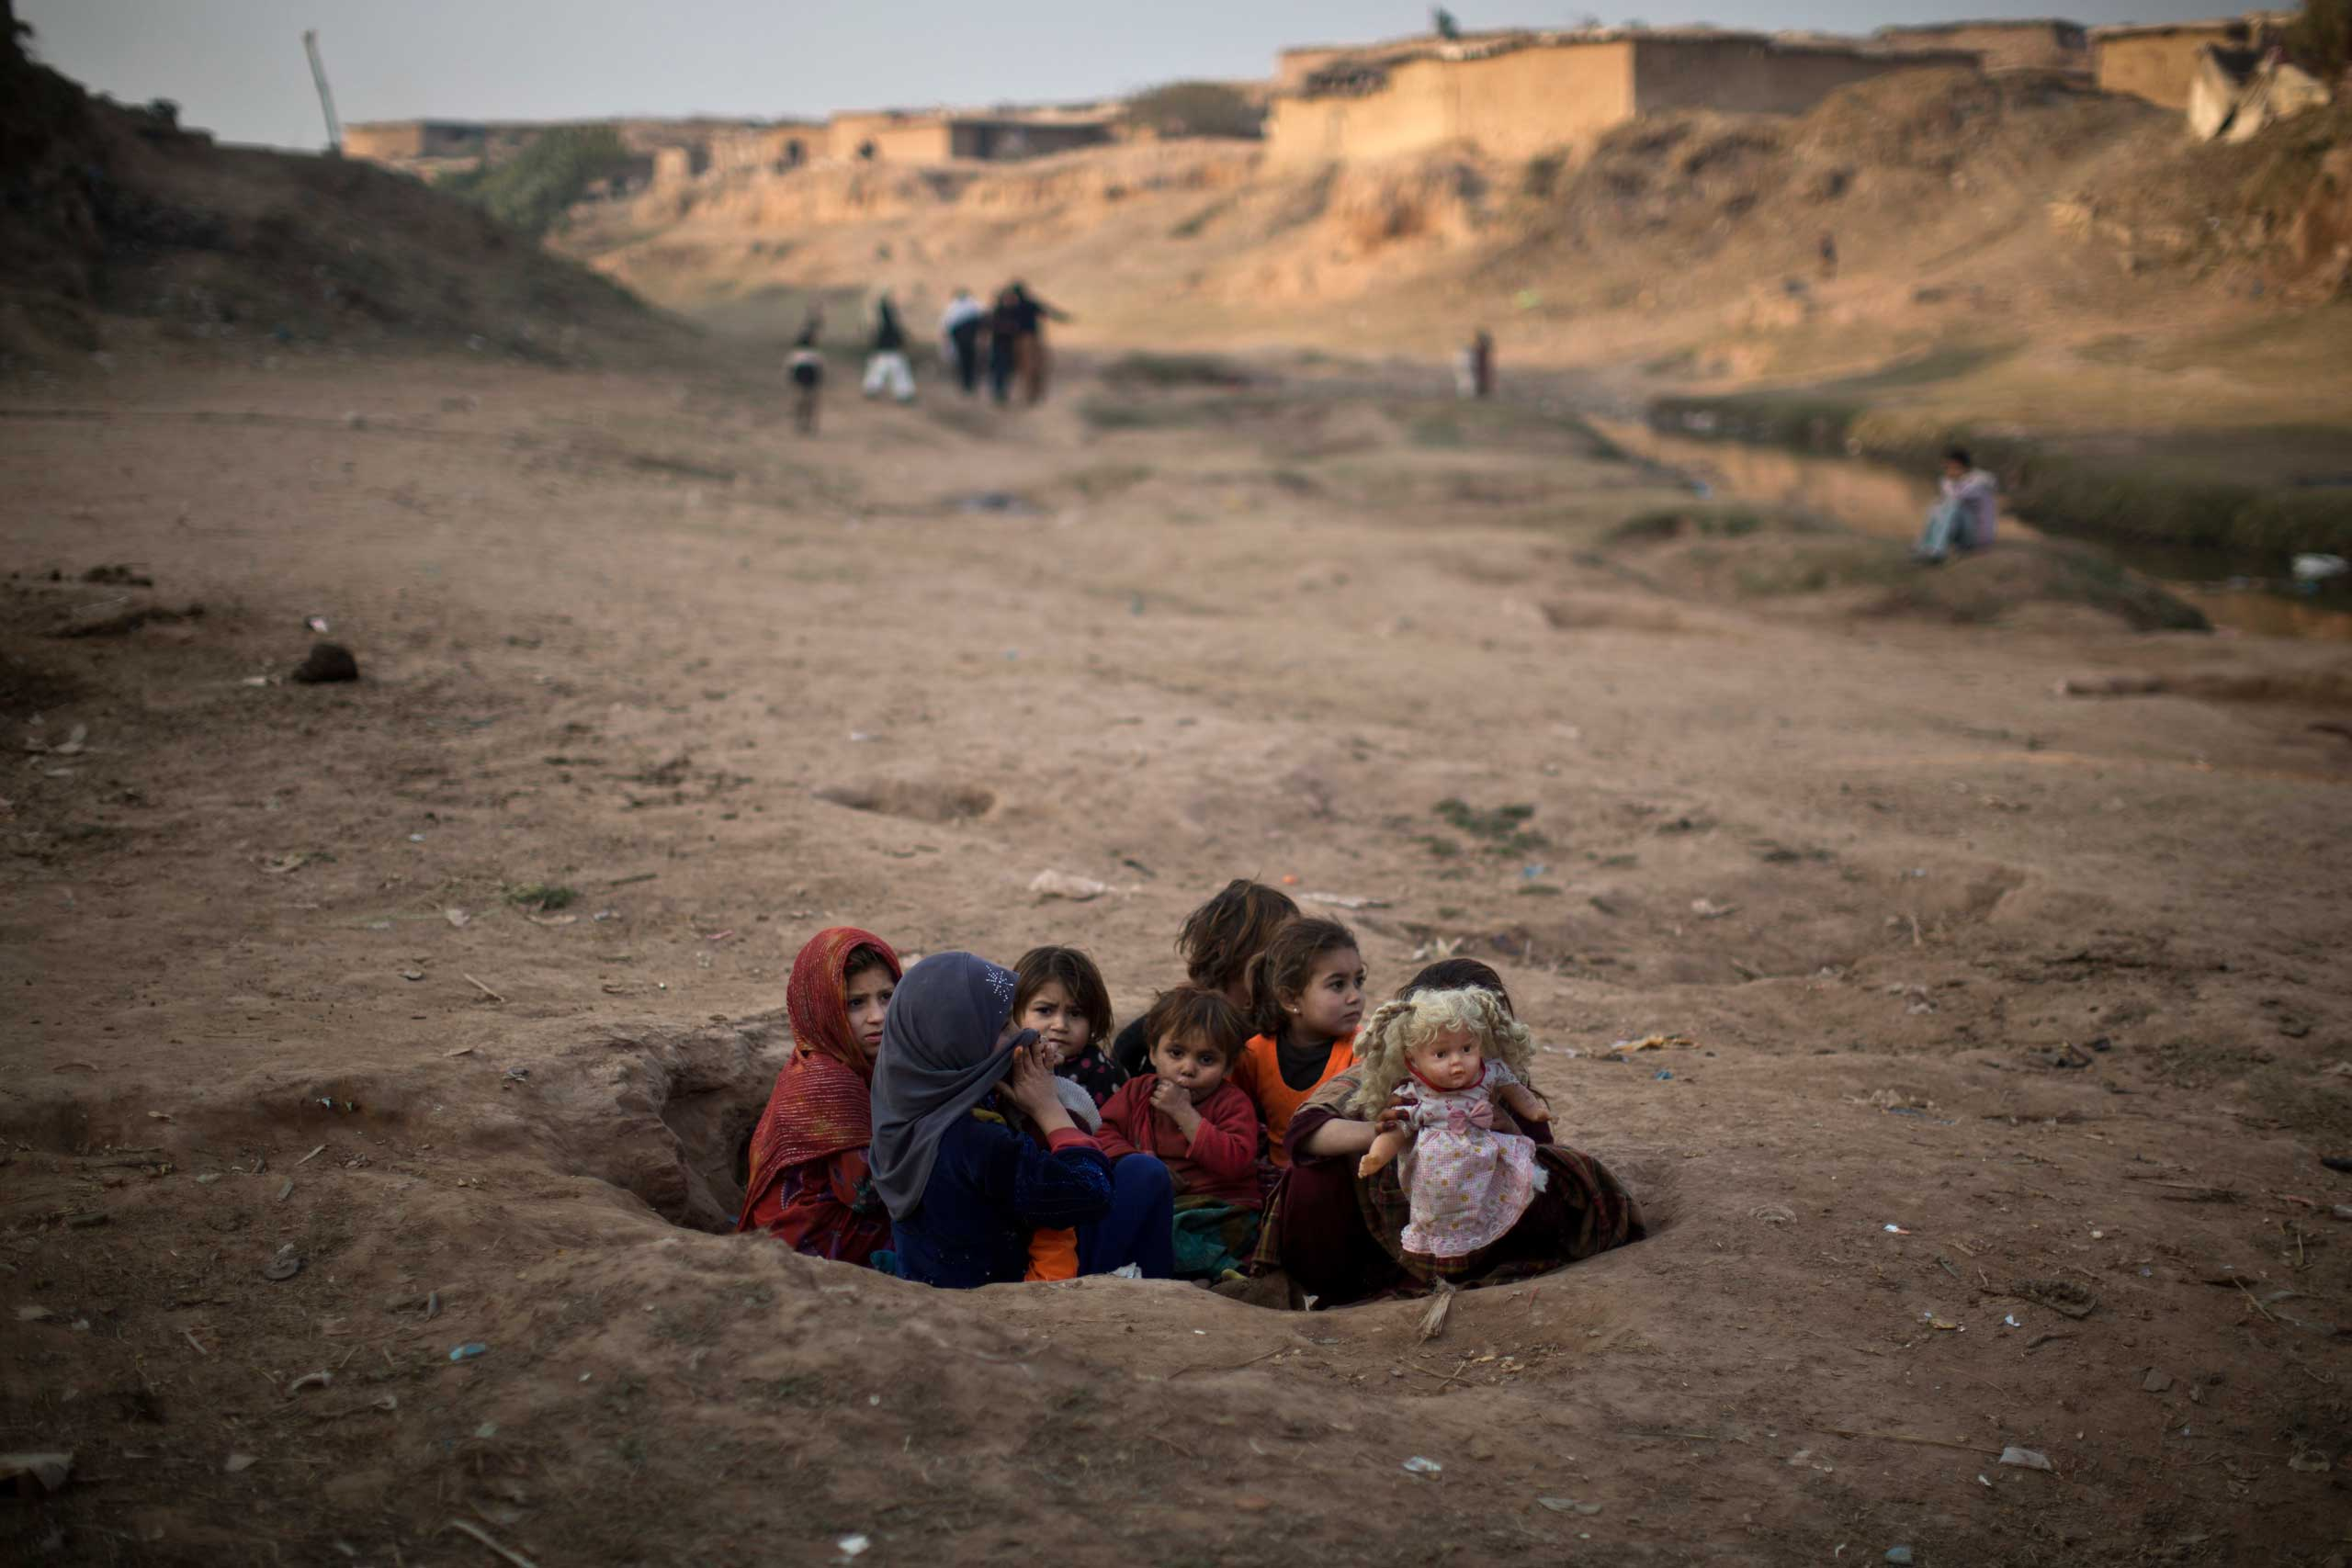 Jan. 3, 2015. Afghan refugee girls playing with a doll in a slum that hosts Afghan refugees and internally displaced Pakistanis from tribal areas on the outskirts of Islamabad, Pakistan.